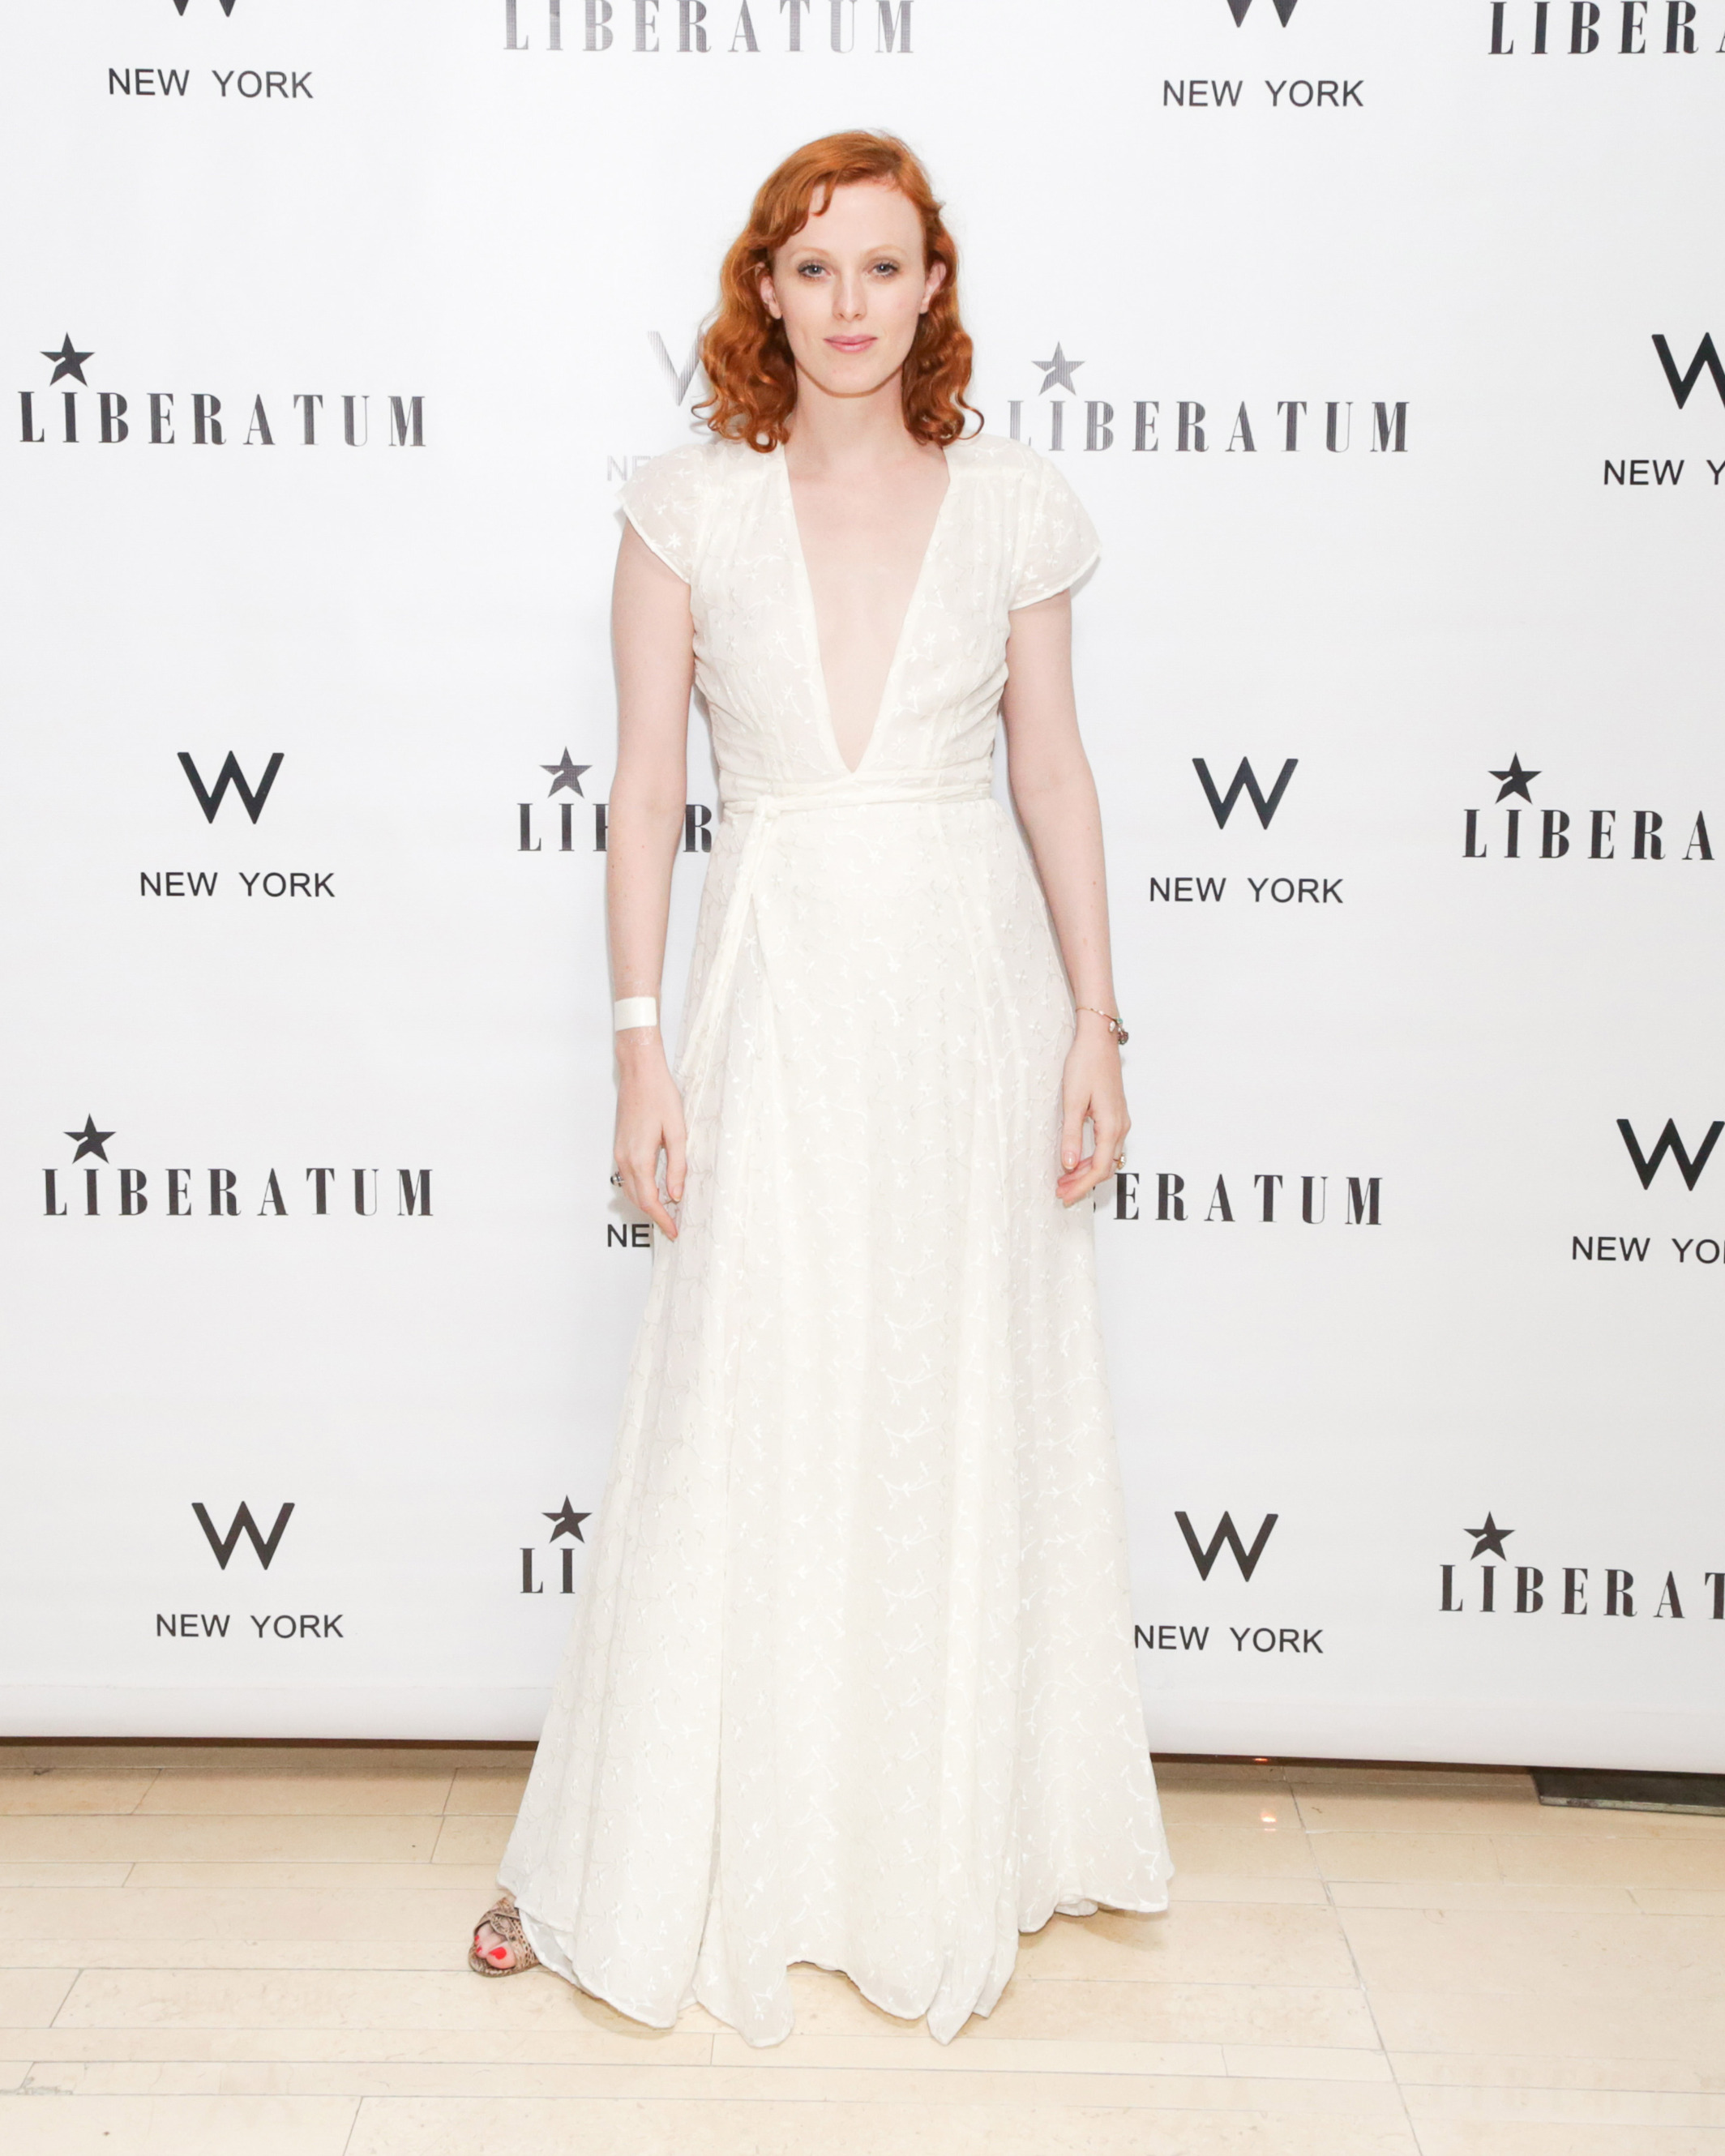 KAREN ELSON ON THE MODEL AS THE MUSE